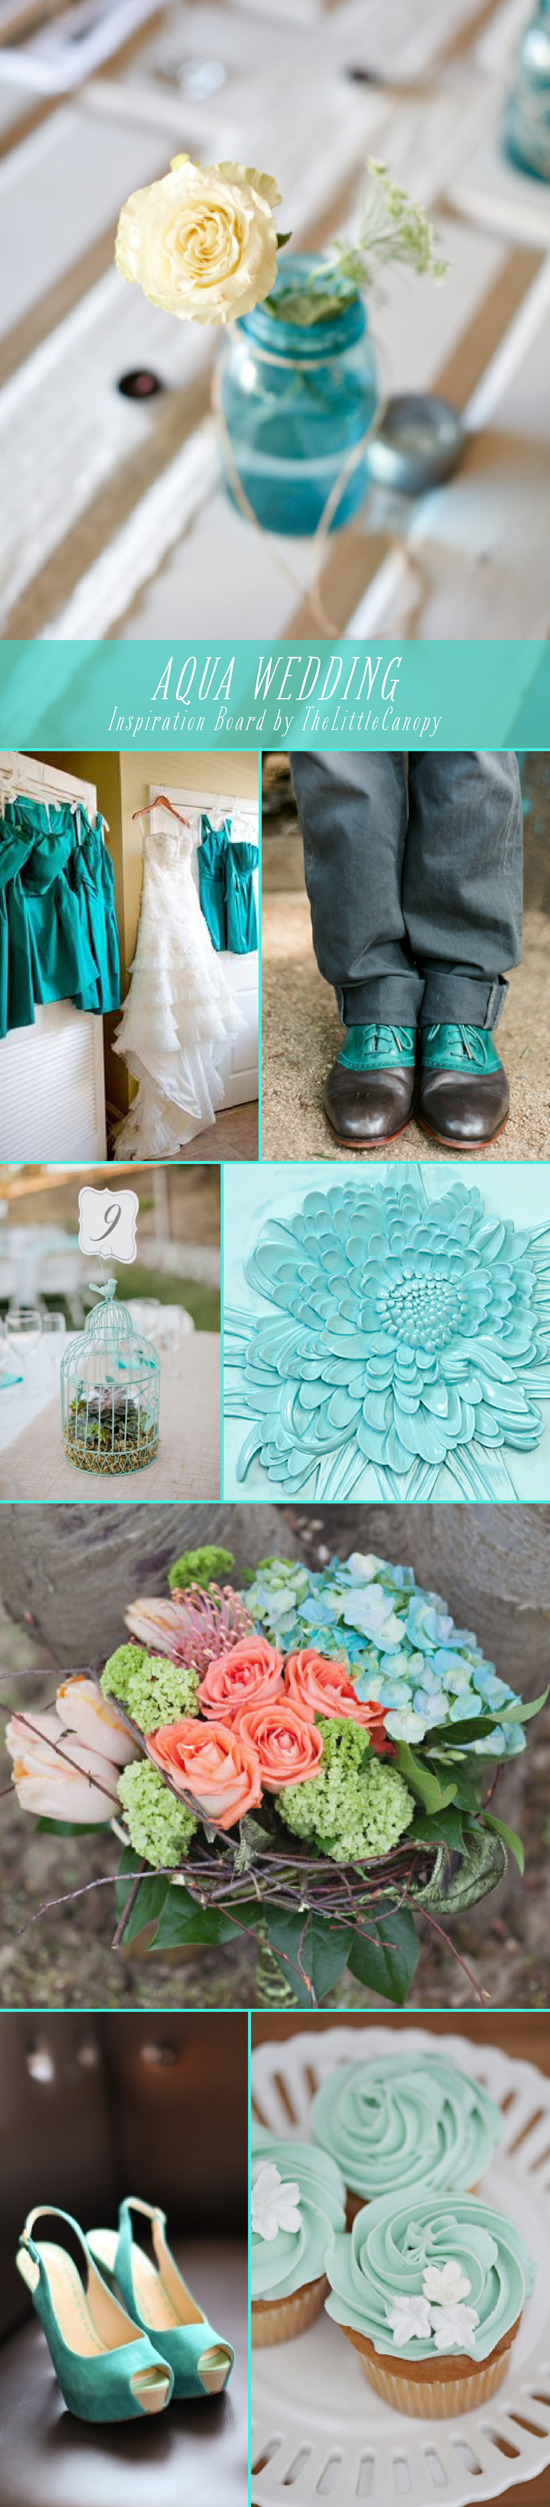 wedding-inspiration-board-aqua-color-theme-ideas